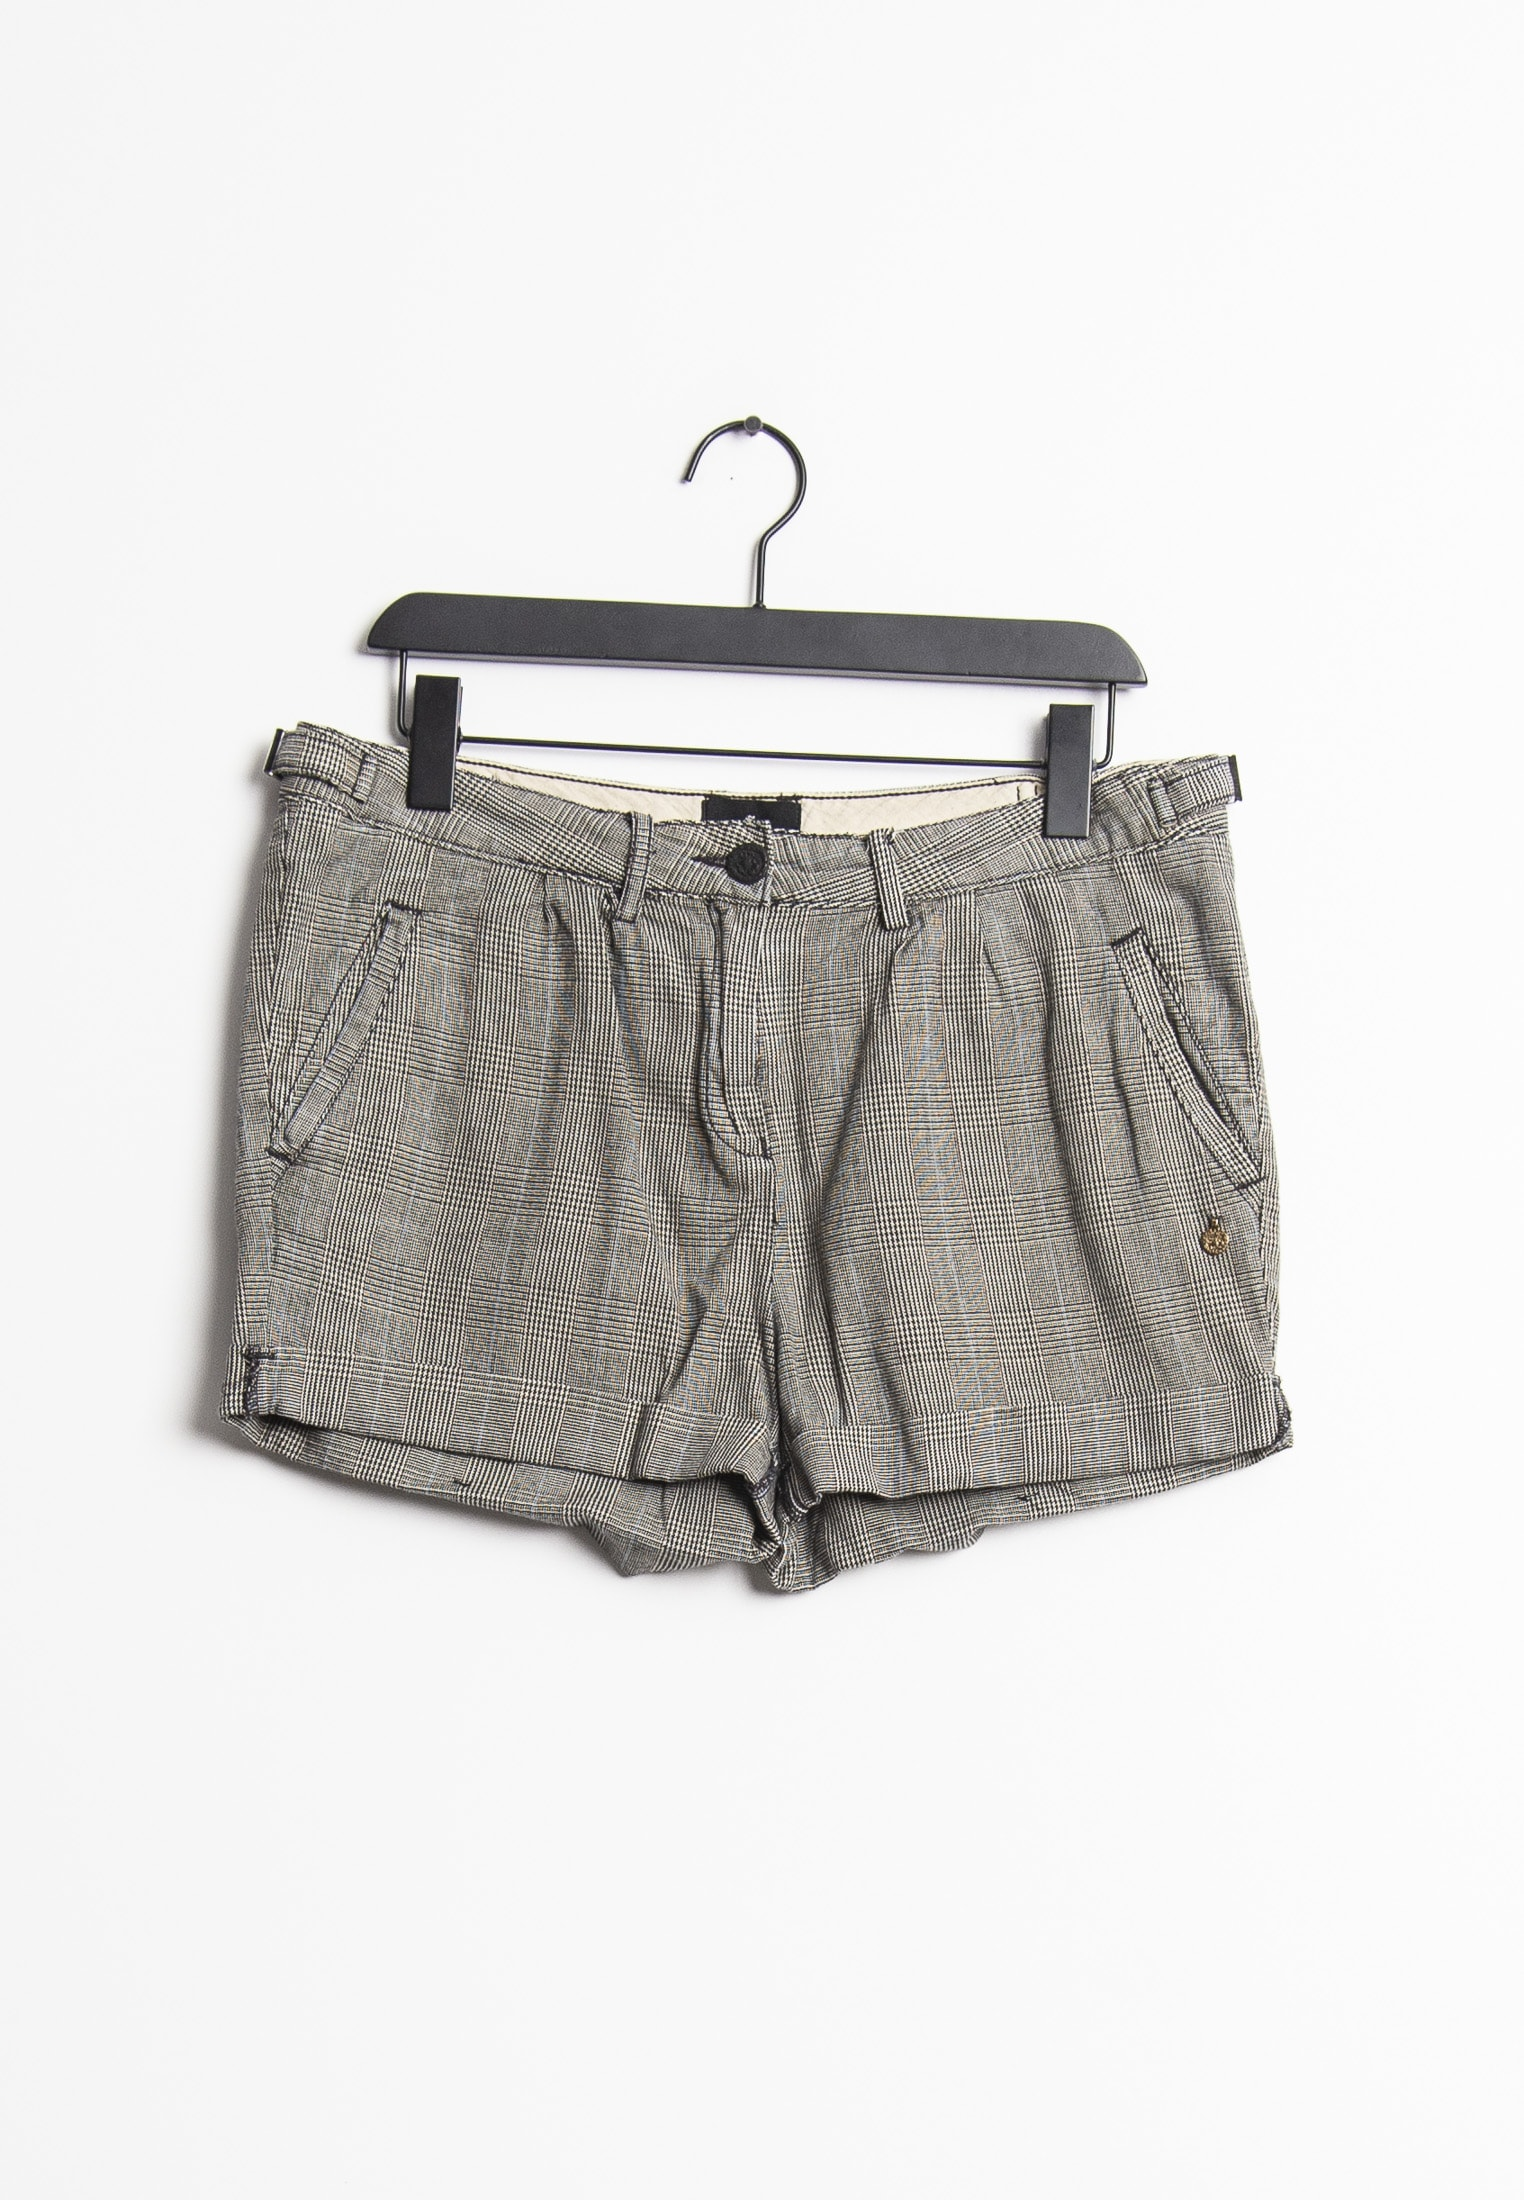 Maison Scotch shorts, brun, 24